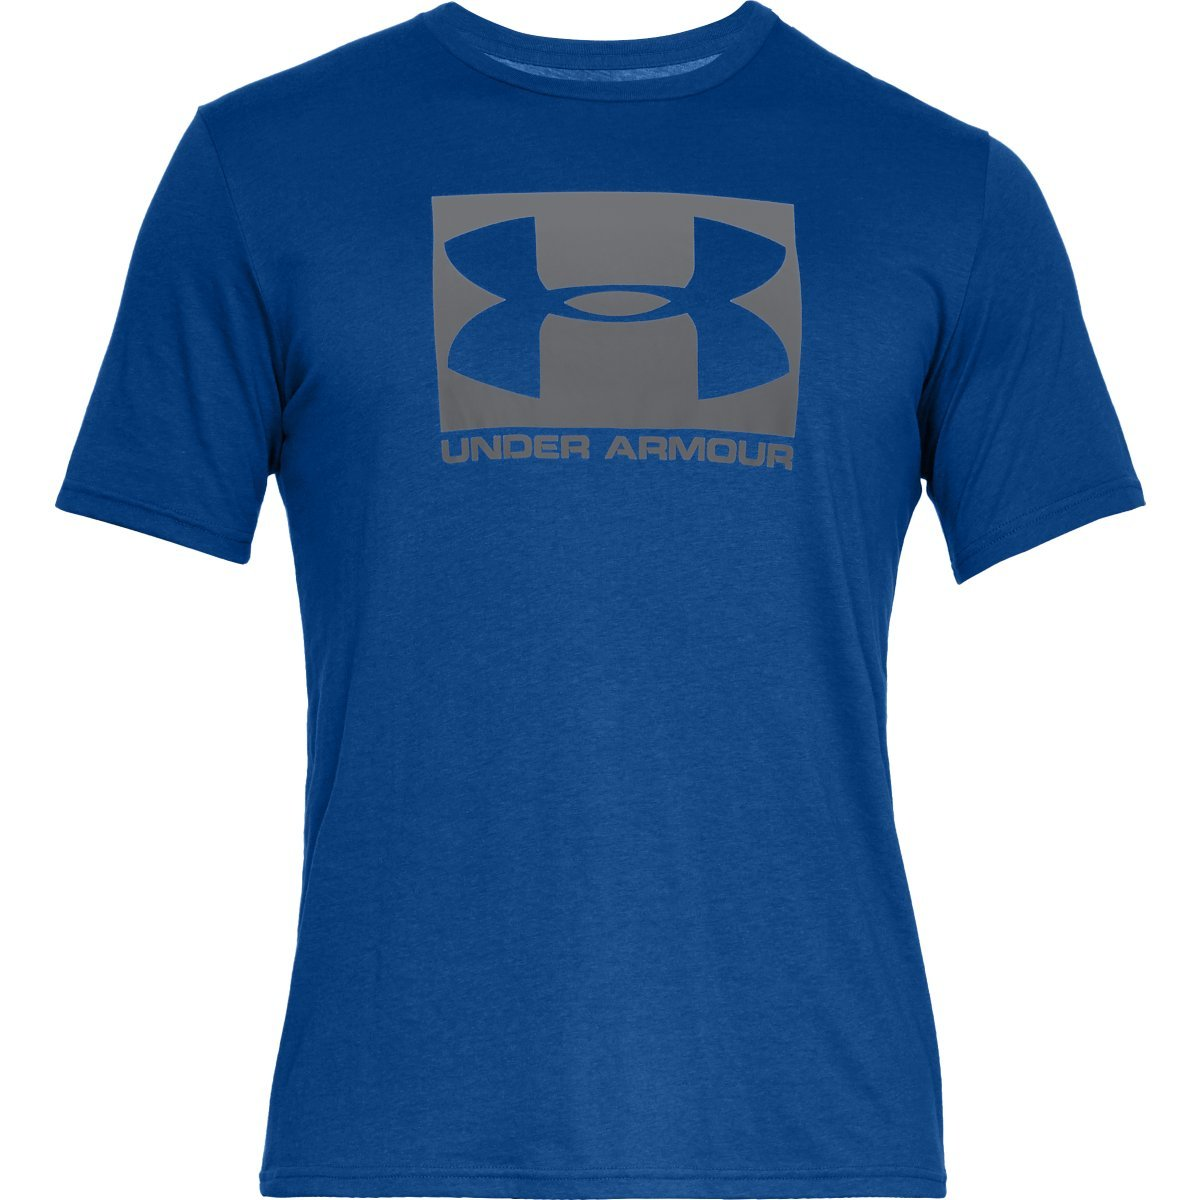 Under Armour Men's Ua Sportstyle Boxed Graphic Short-Sleeve Tee - Blue, XL